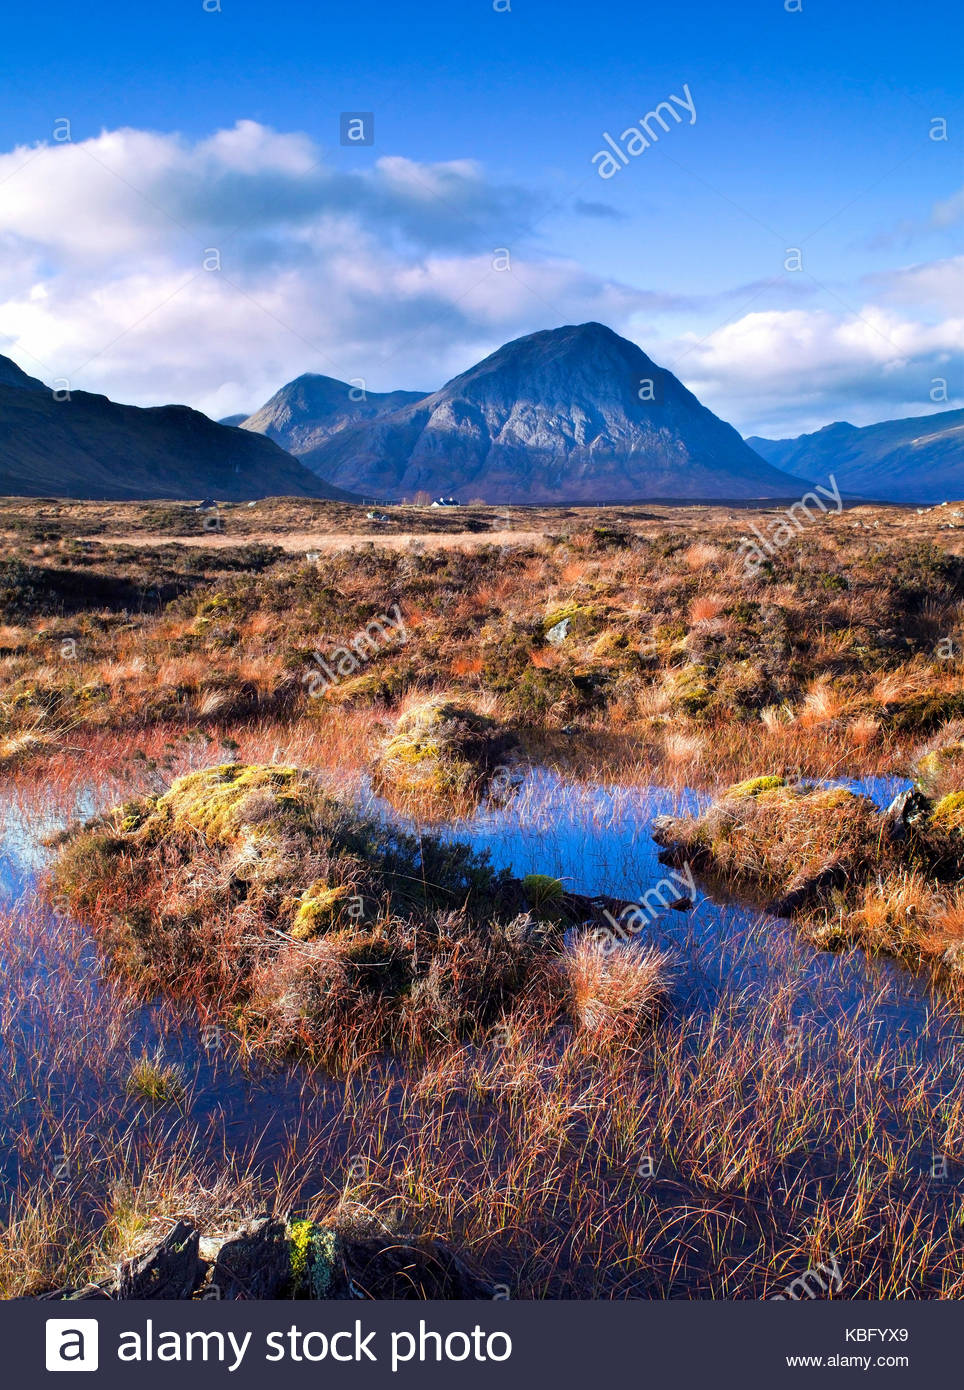 A colourful view across Rannoch Moor of the iconic mountain Buachaille Etive Mor in the Scottish Highlands - Stock Image